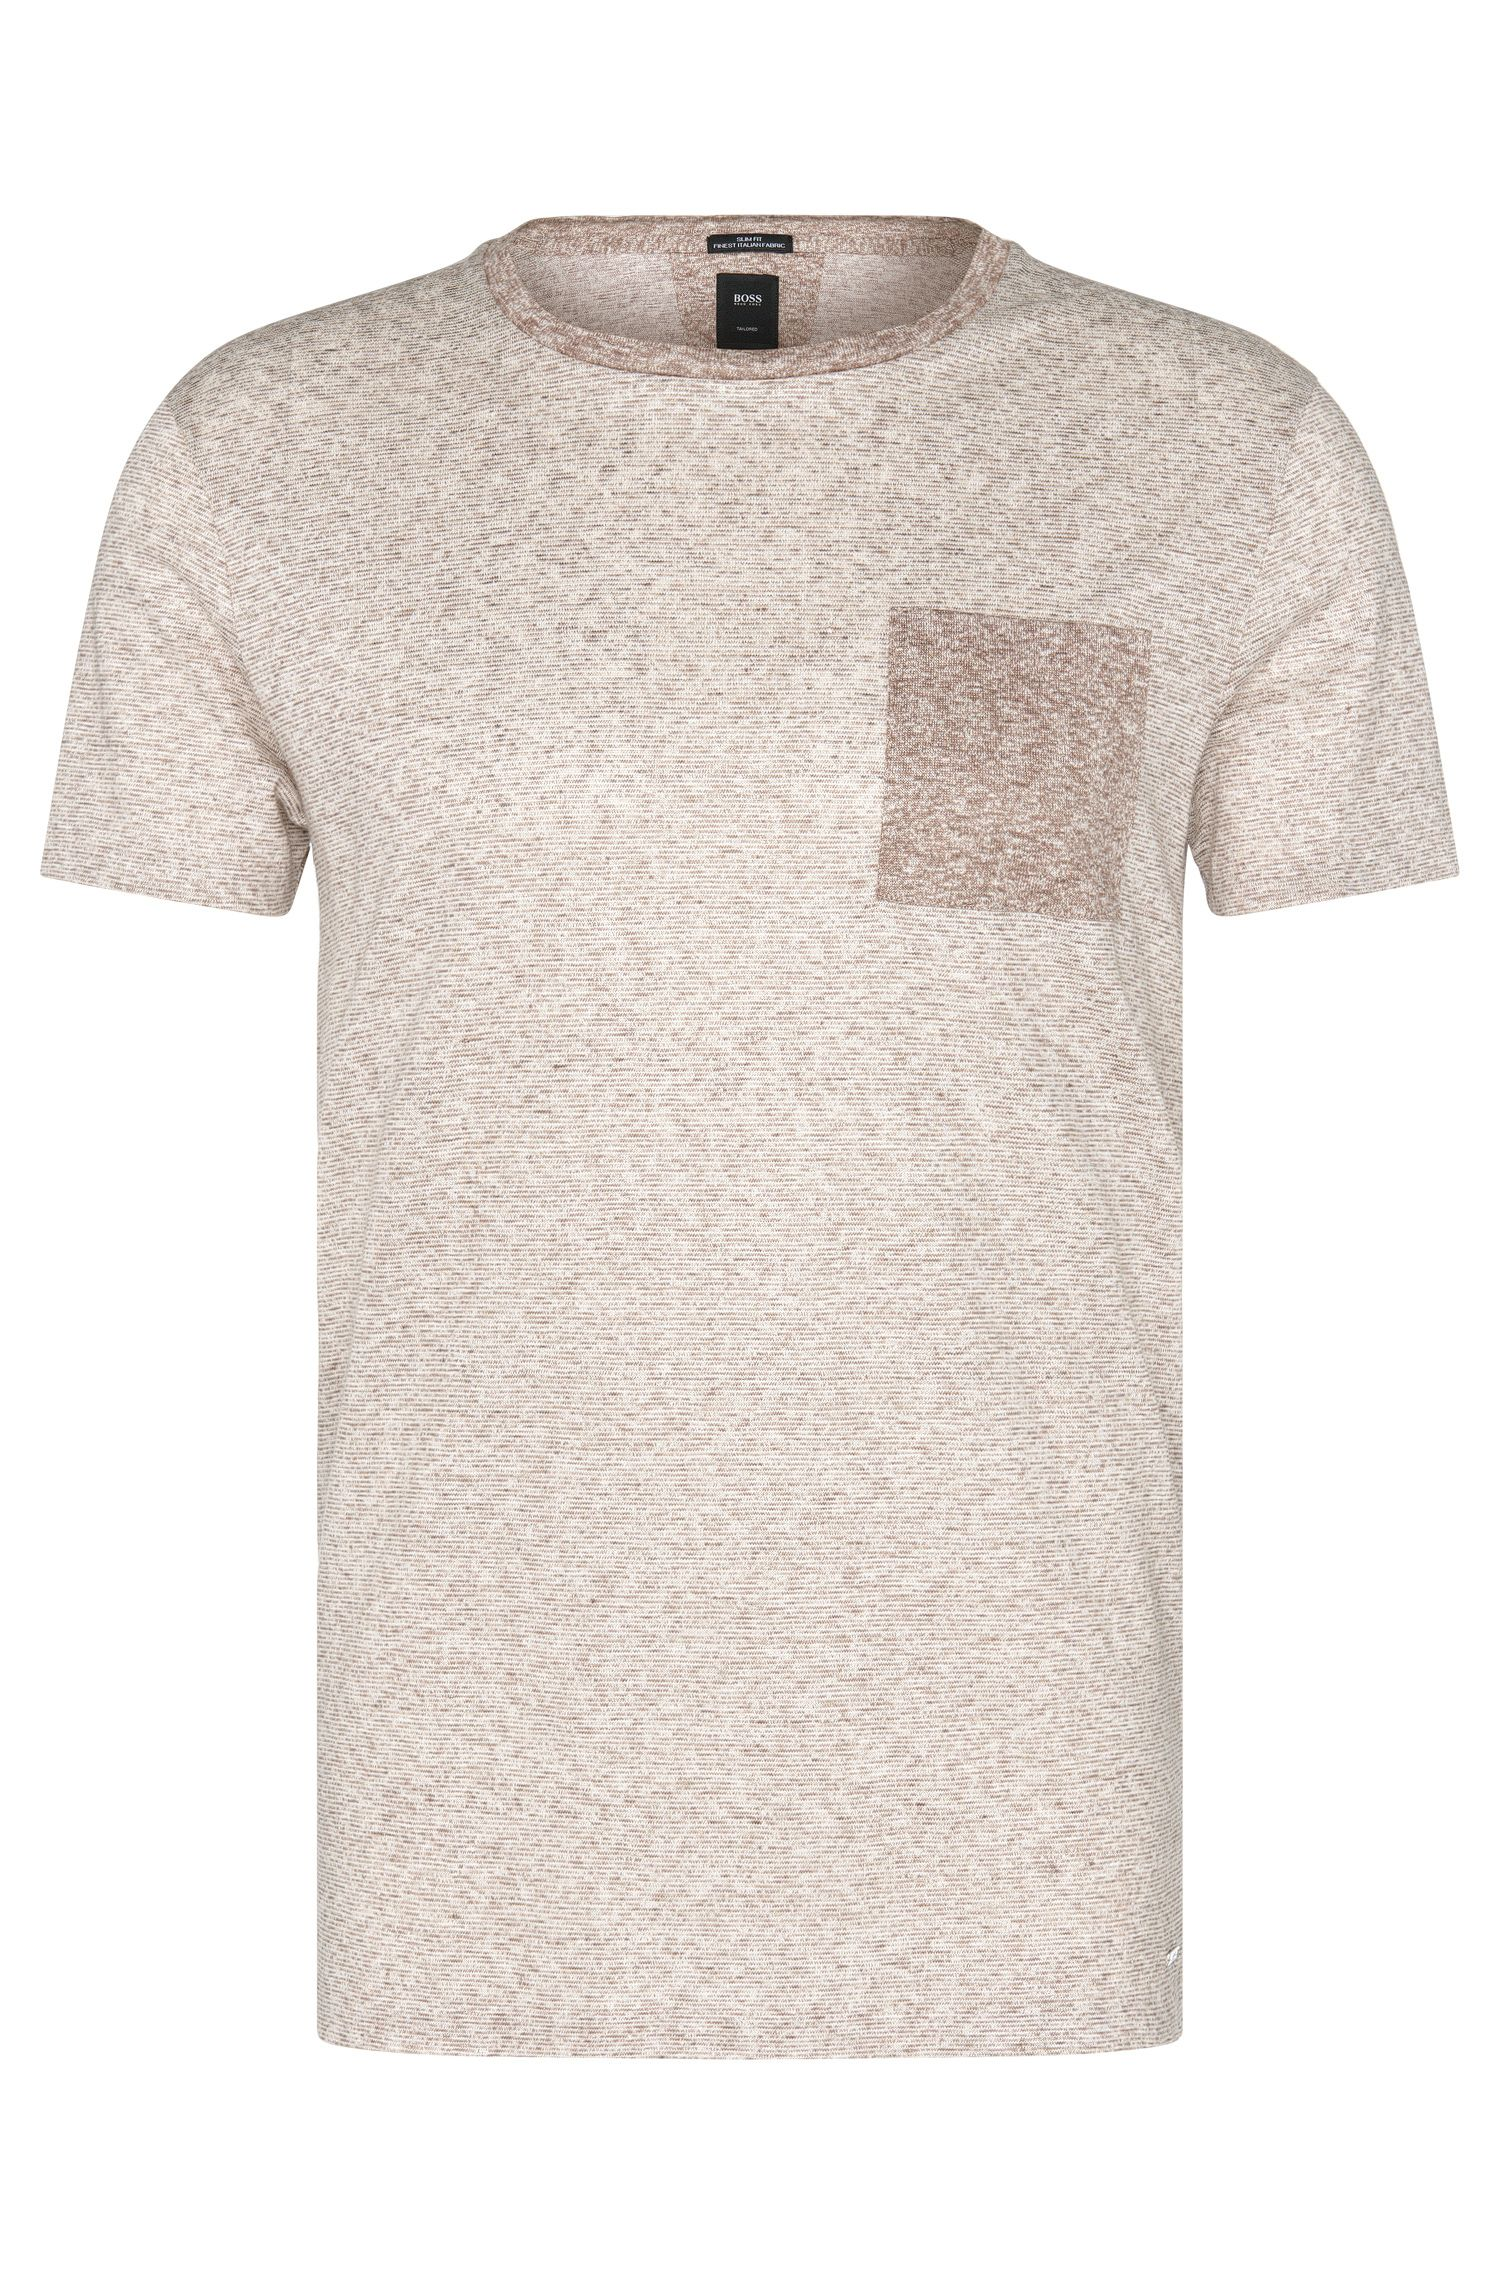 T-shirt Slim Fit Tailored à motif en lin : « T-Tribel 24 »